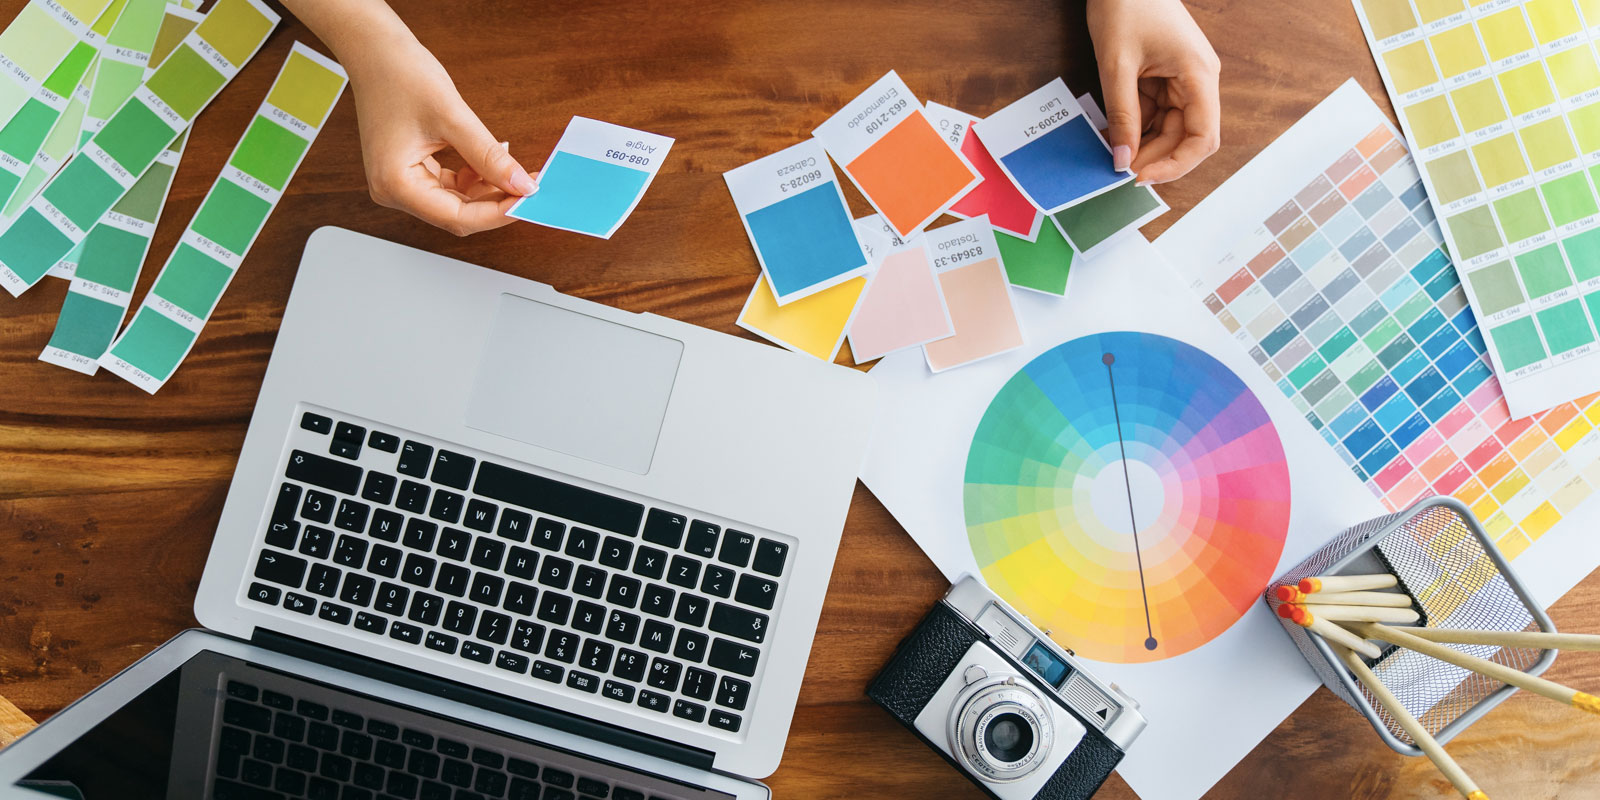 Using Good Design to Grow Your Business